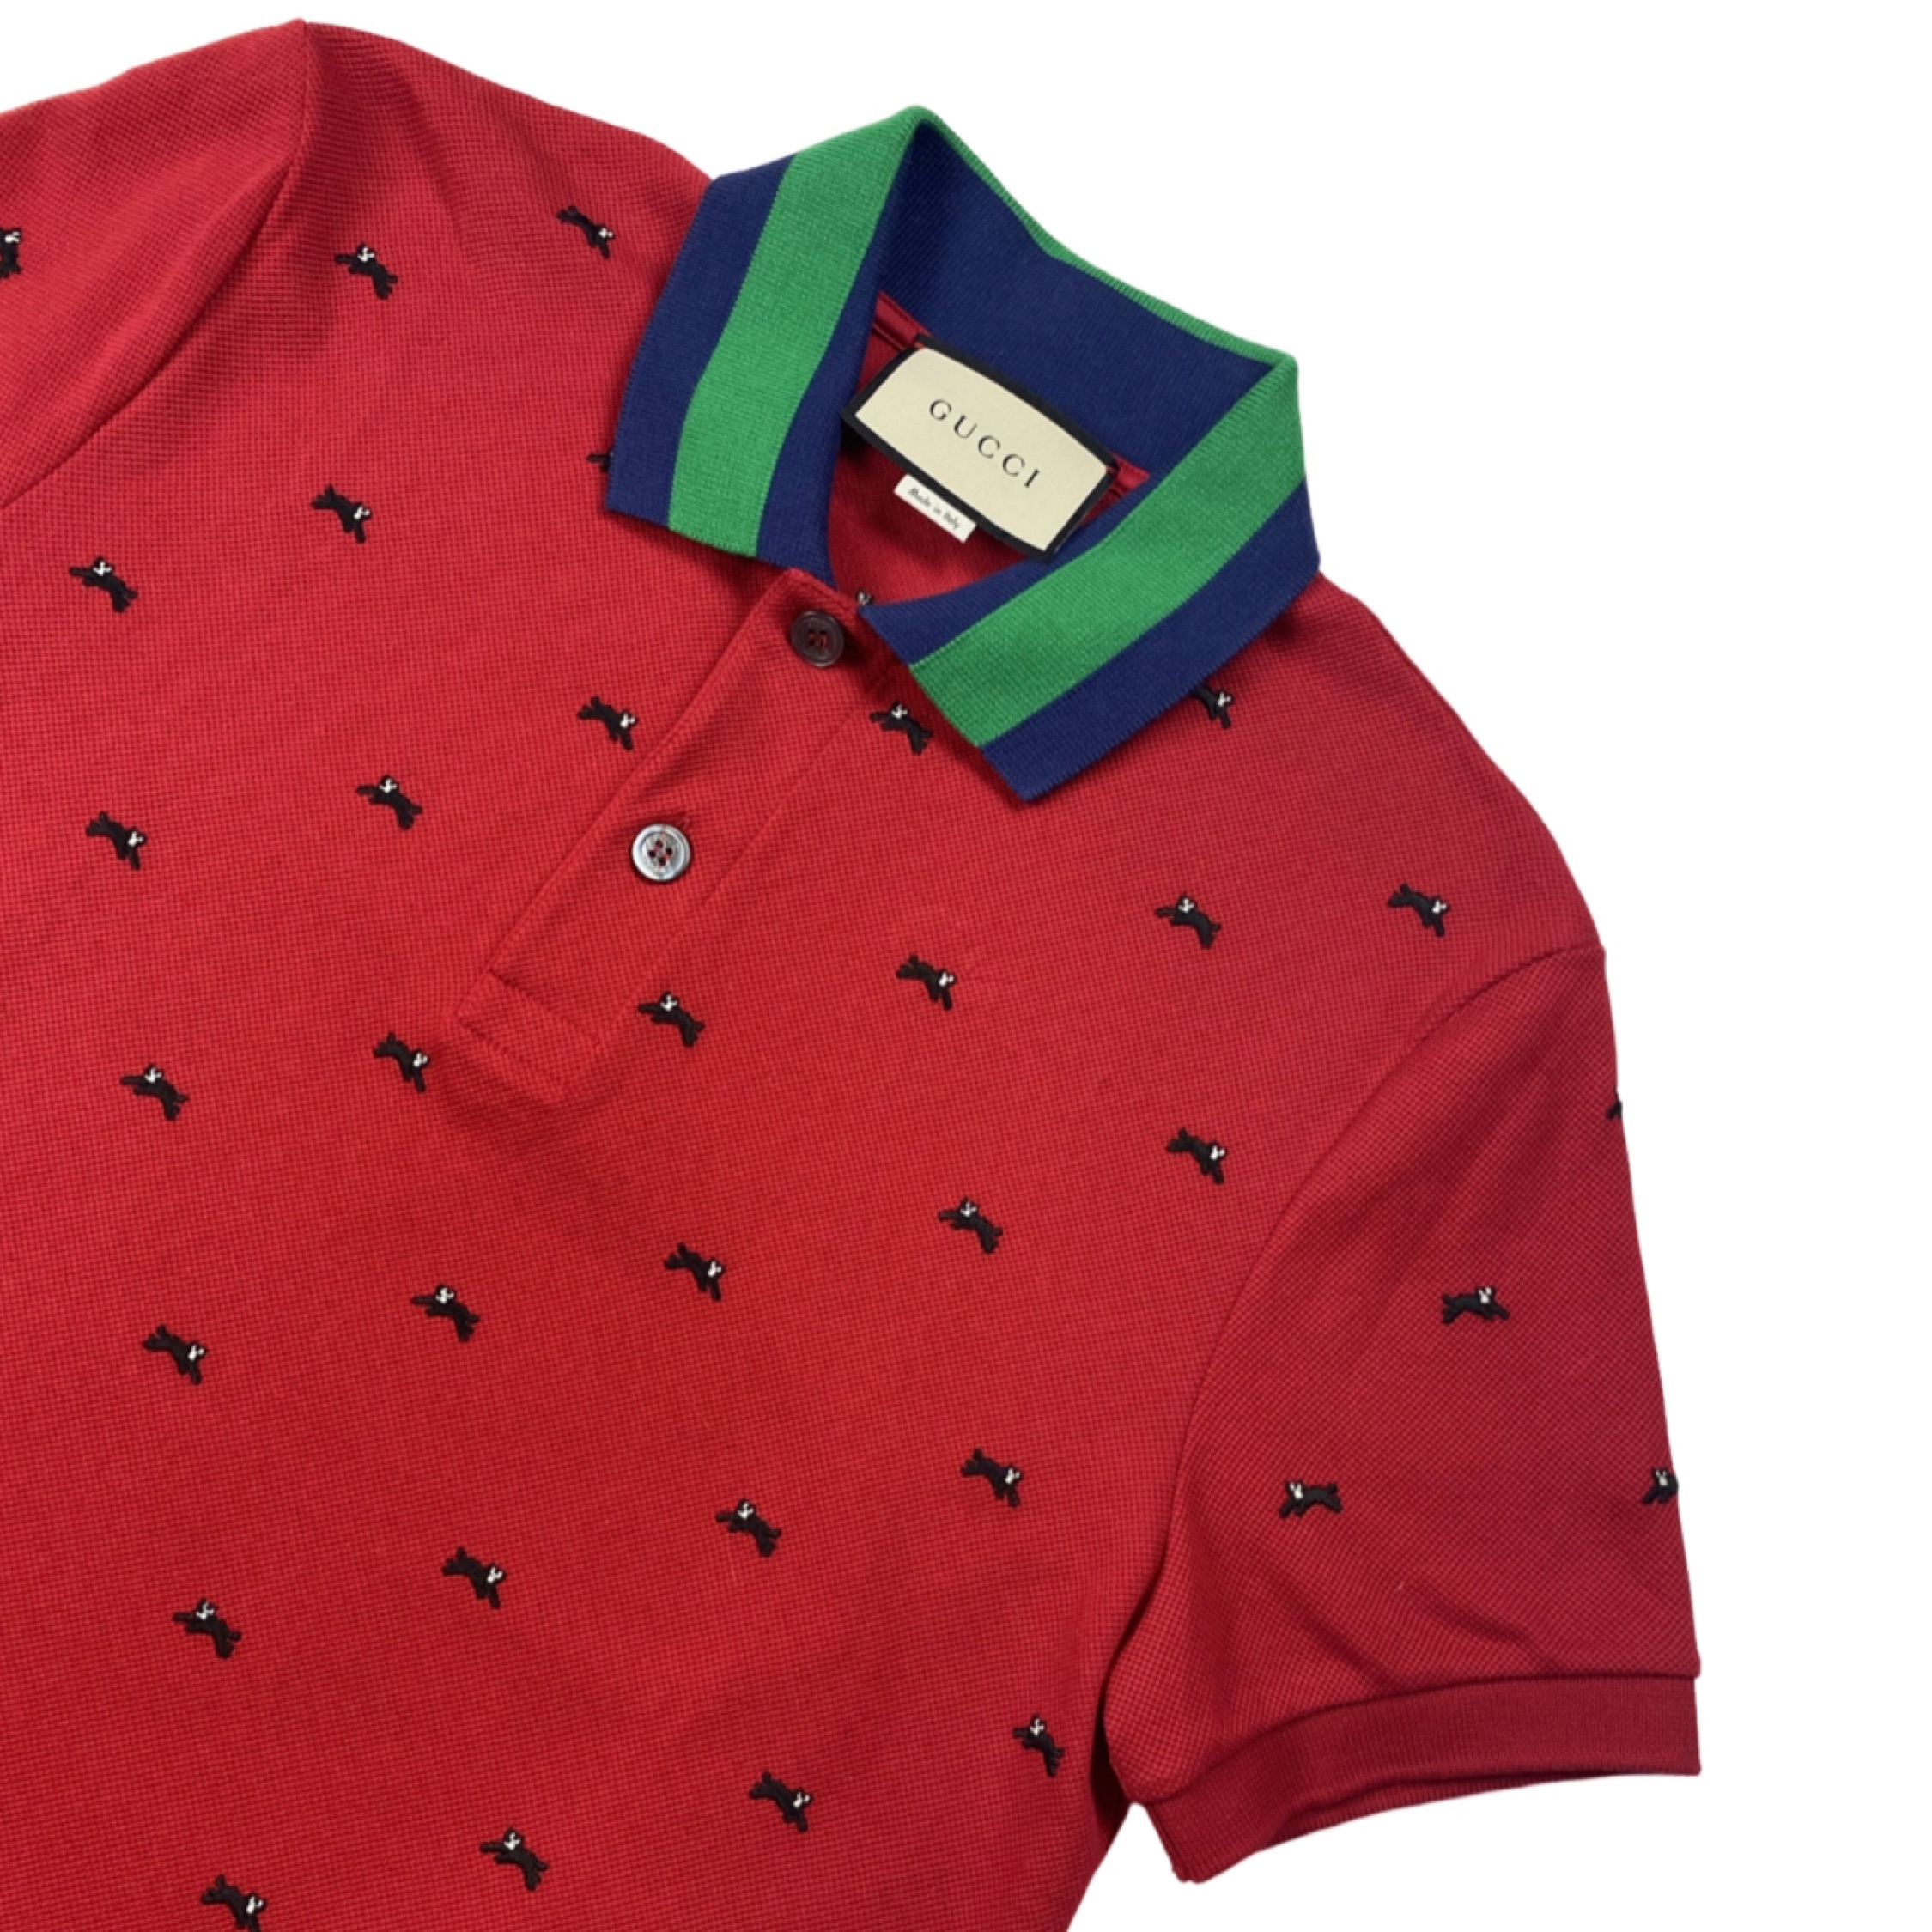 Gucci Red Cat Polo